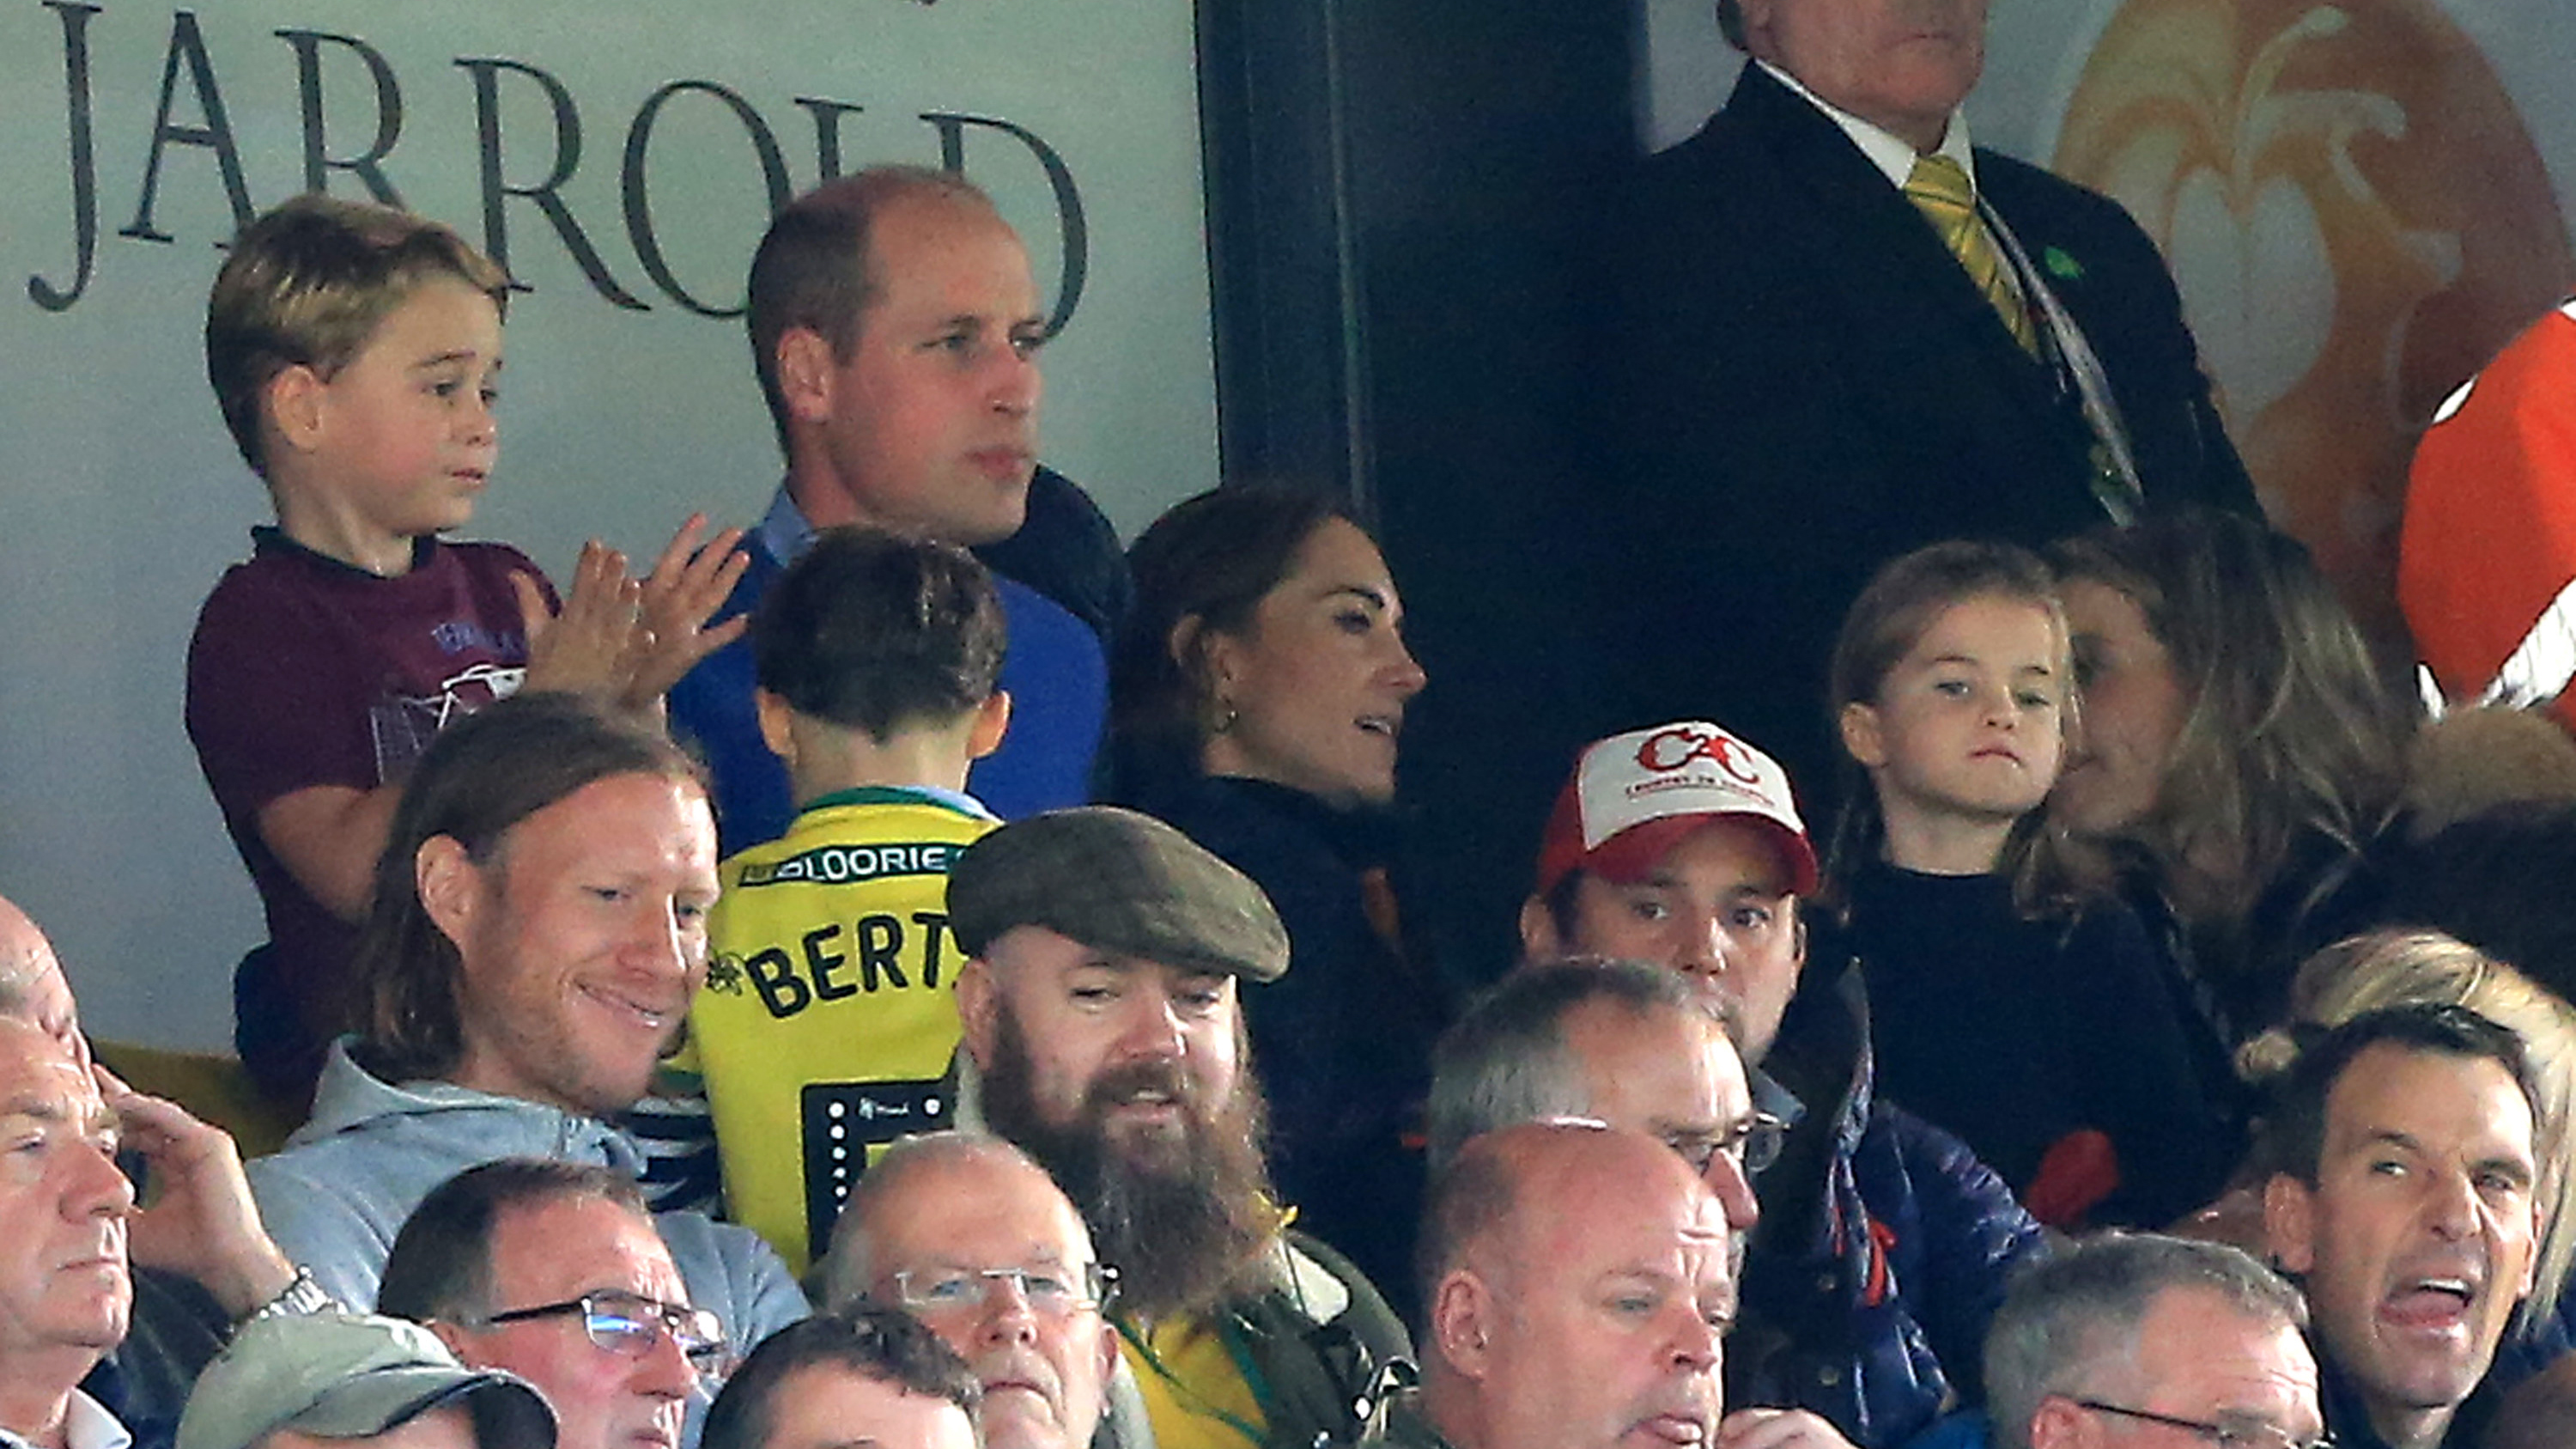 Prince William, Kate Middleton take George and Charlotte to cheer on Aston Villa vs Norwich